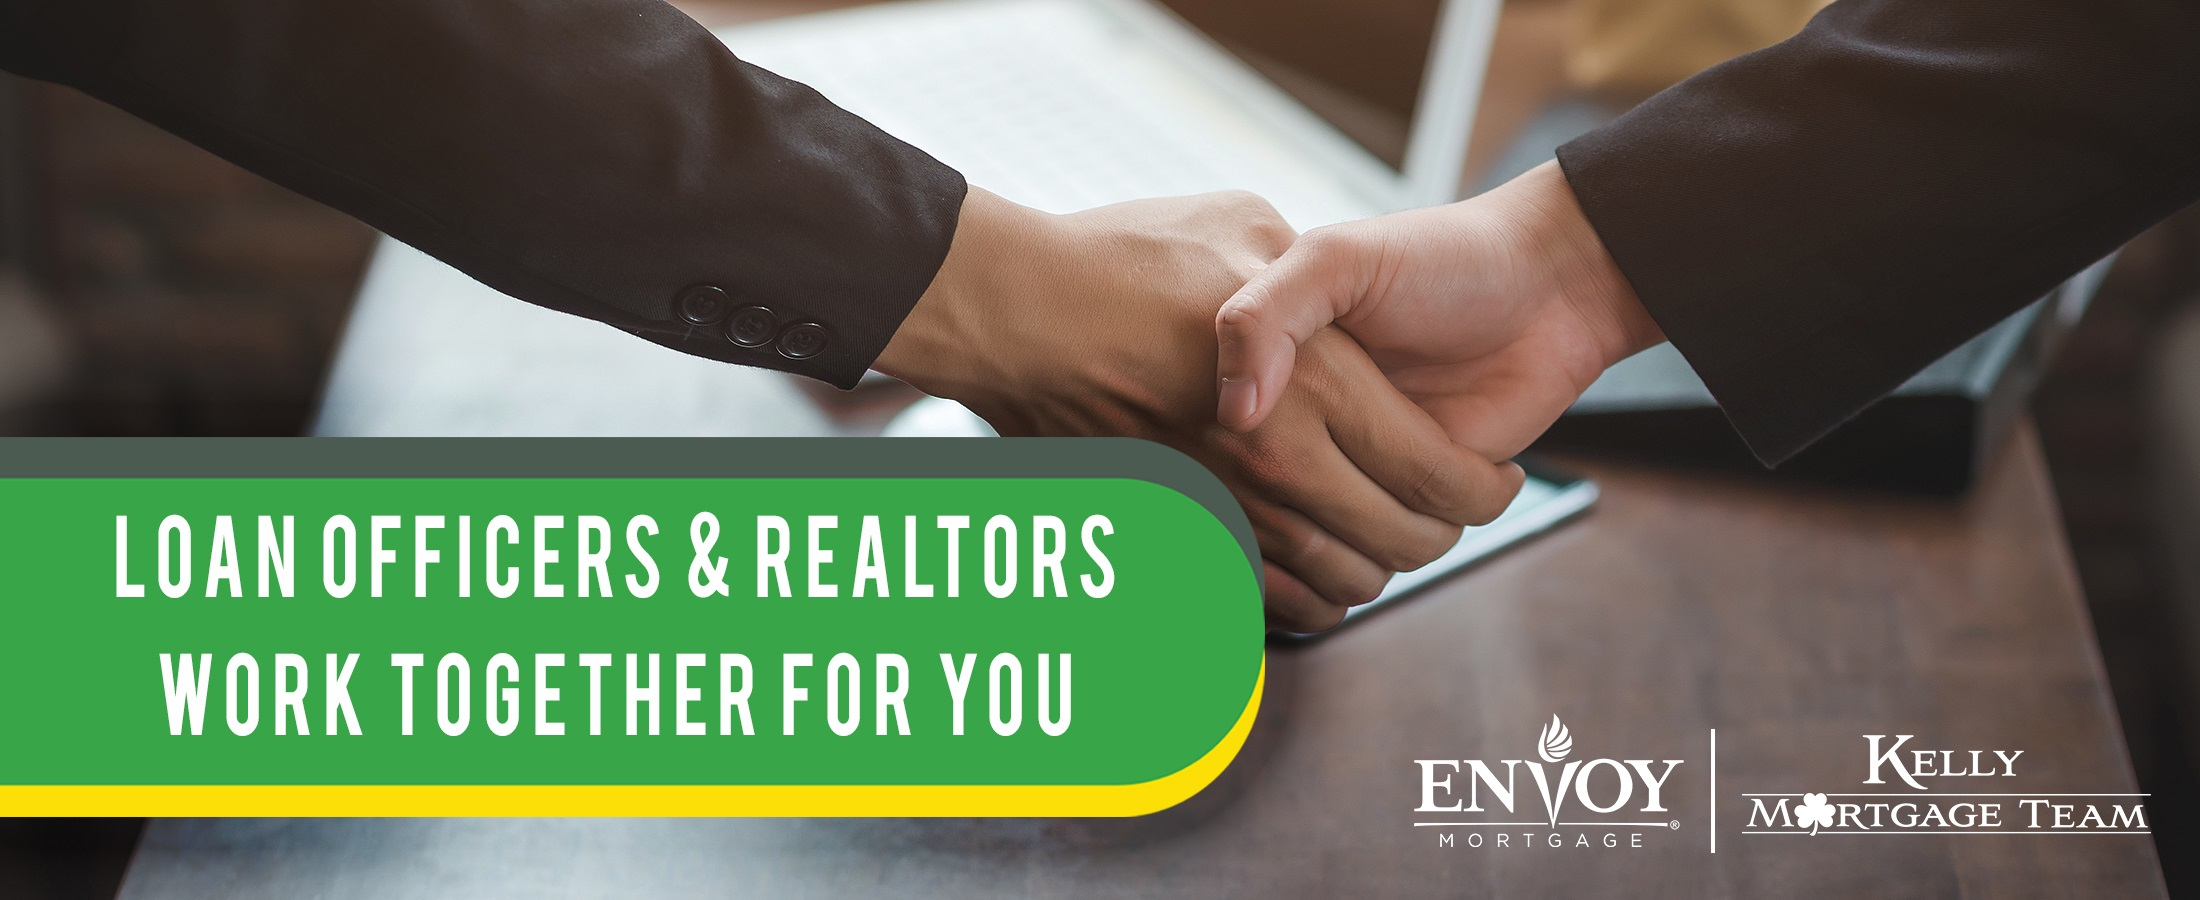 Loan Officers & Realtors Work Together for You